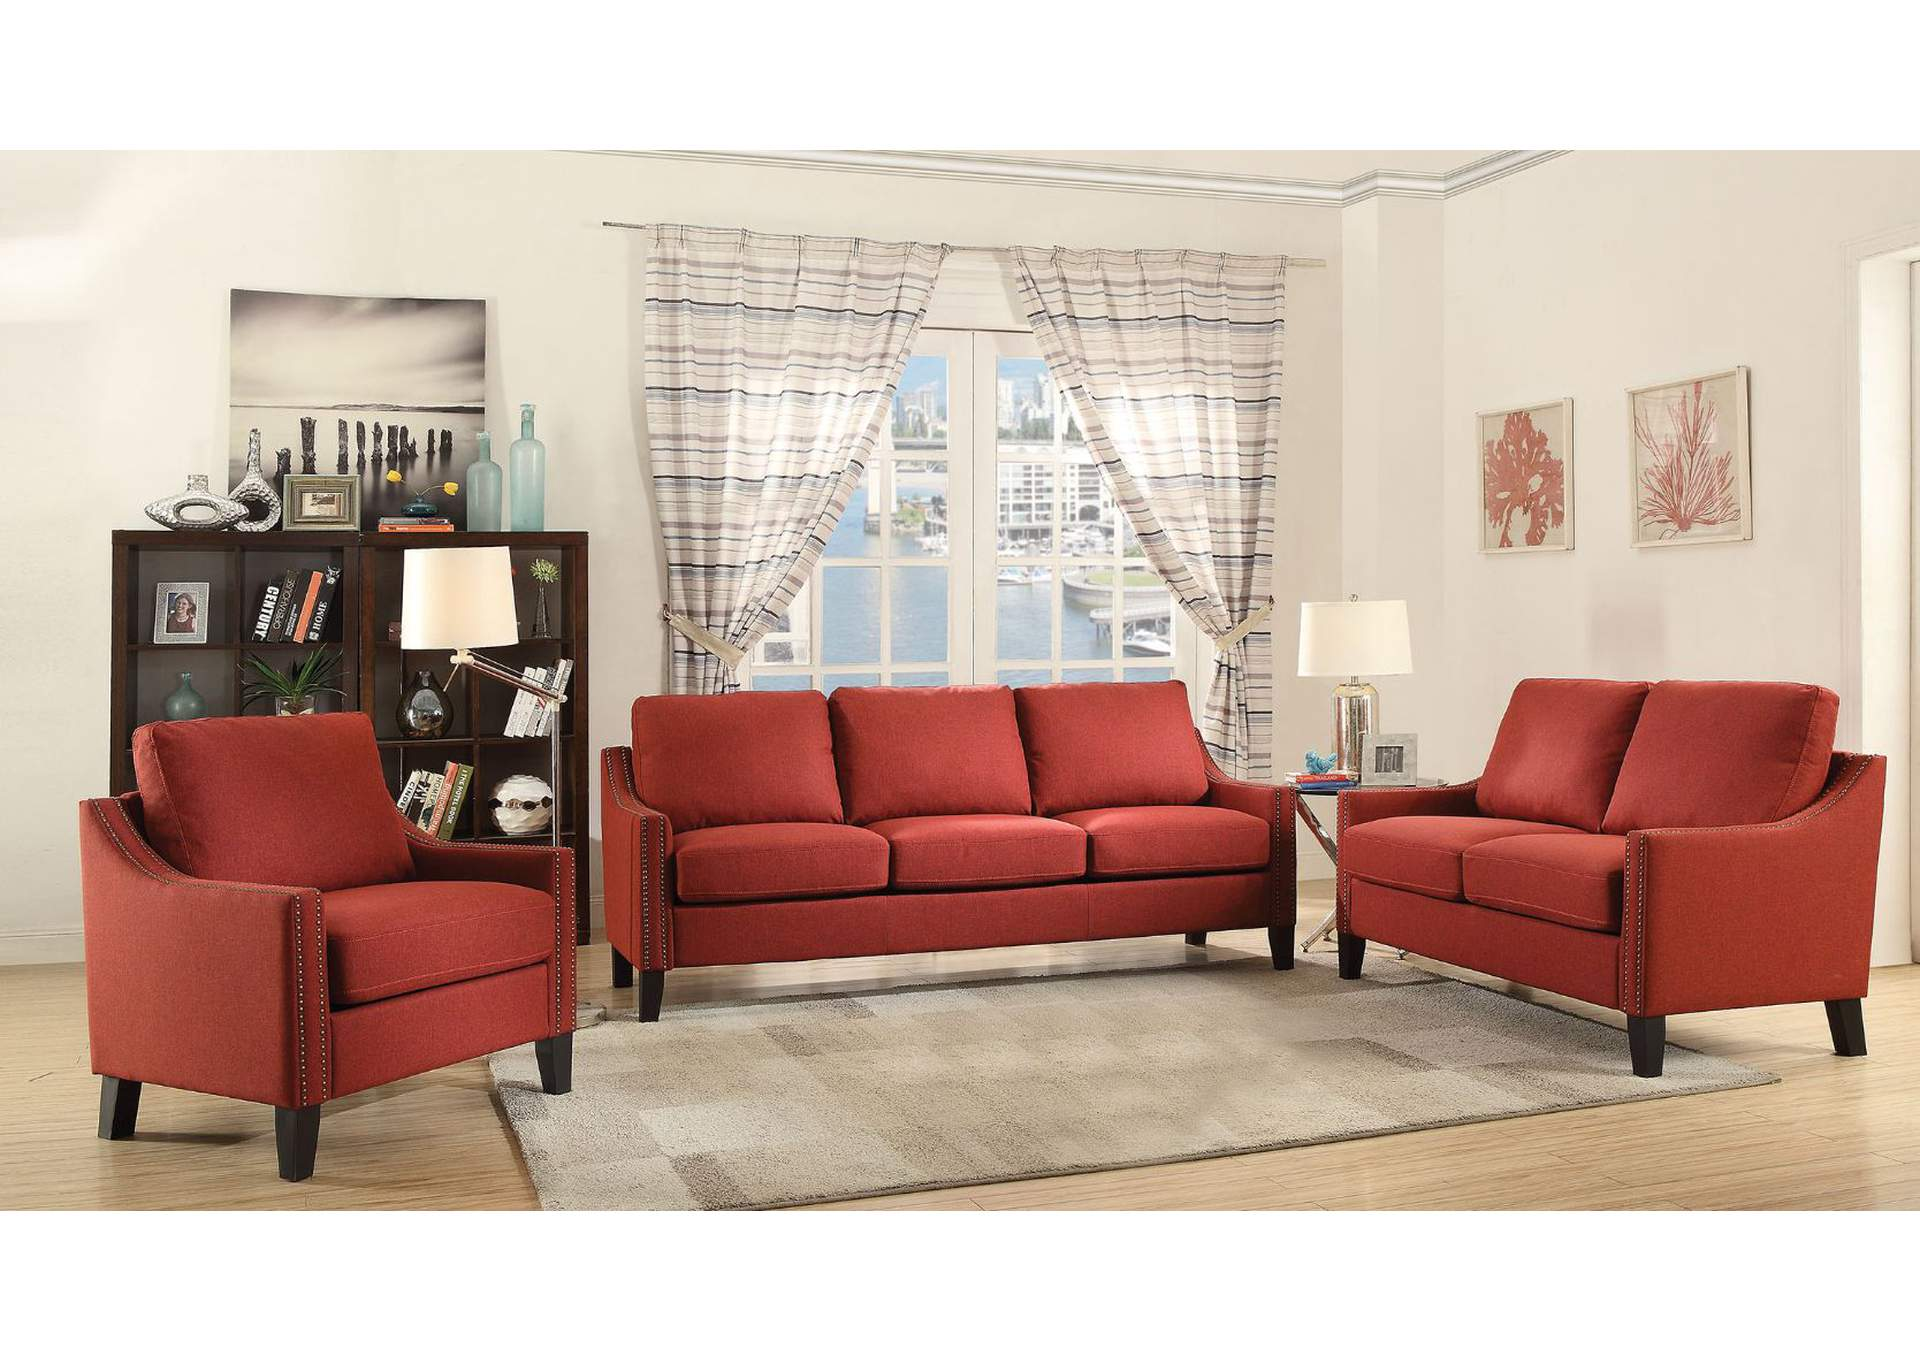 Zapata Red Linen Sofa,Acme